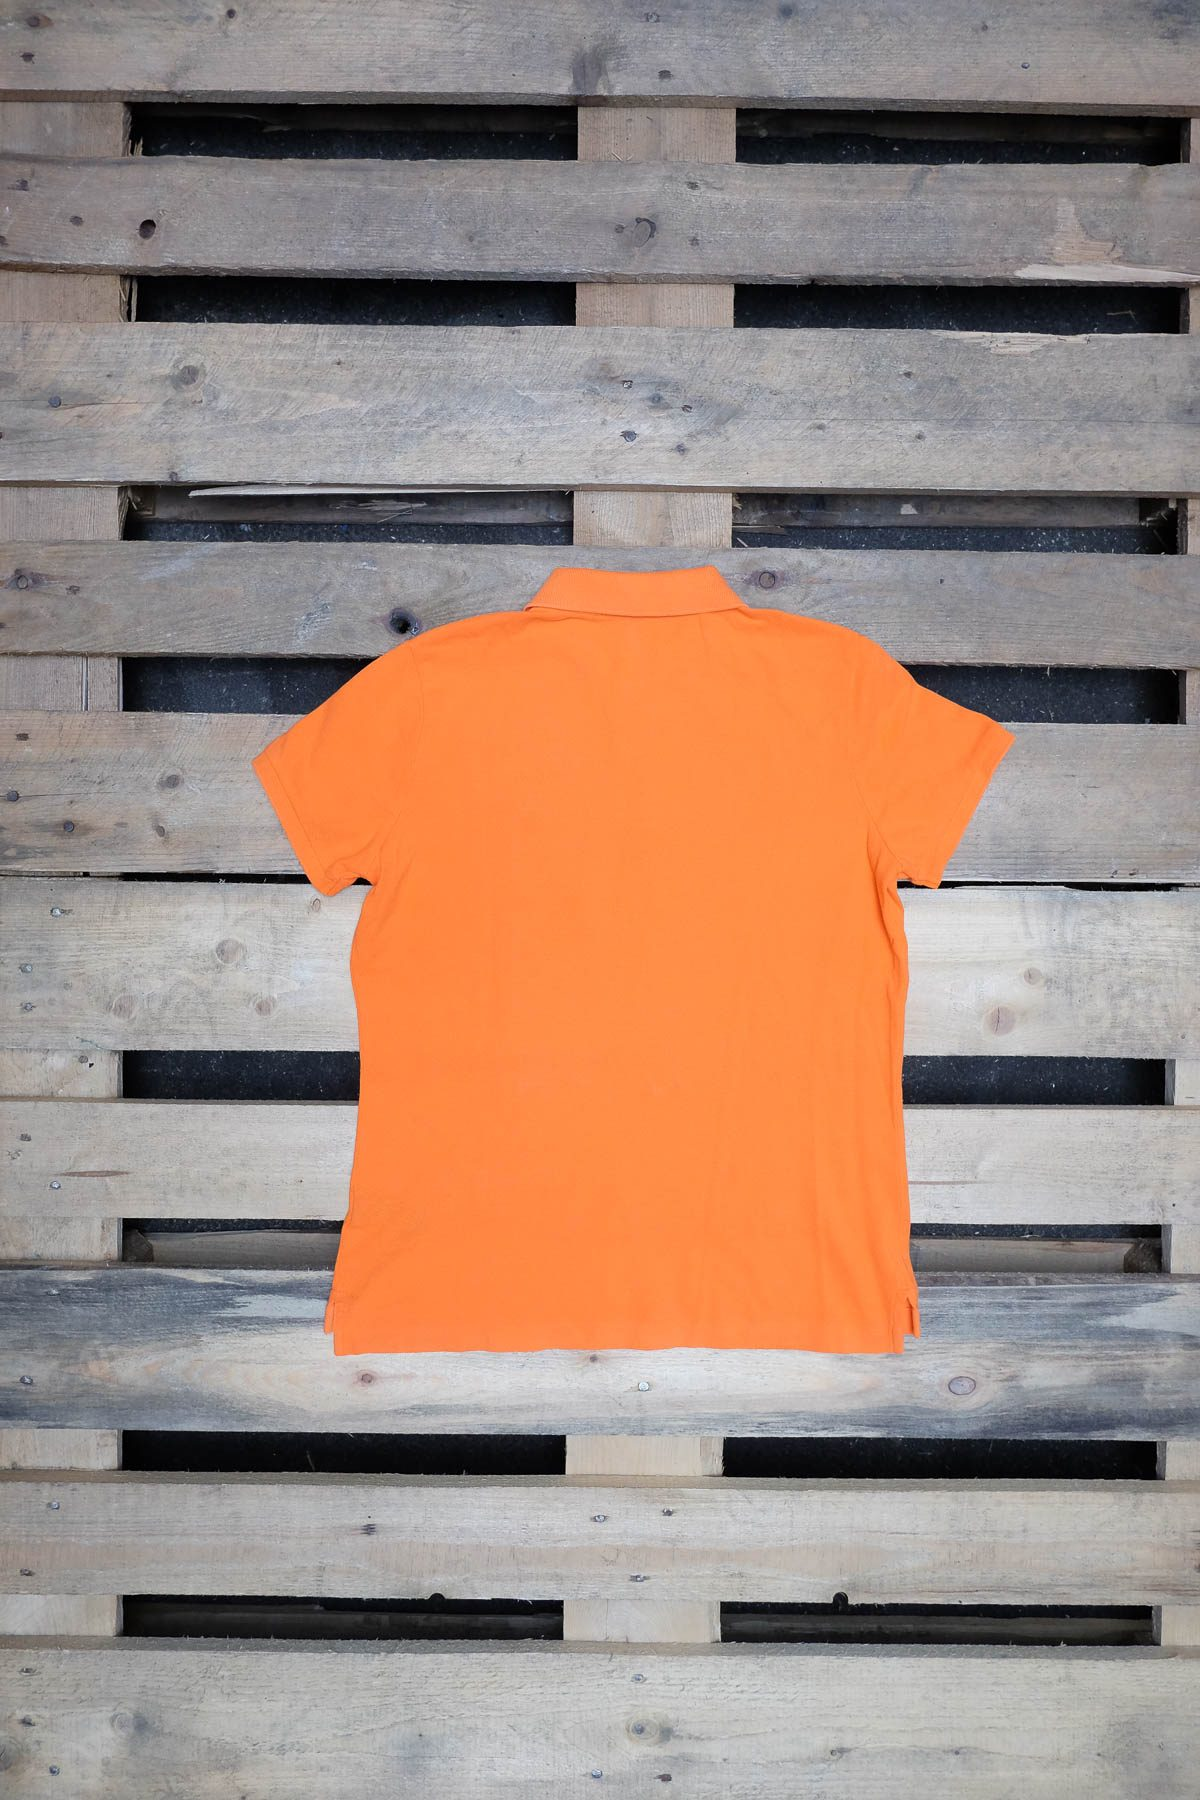 Ralph Lauren T-SHIRT POLO VINTAGE Orange